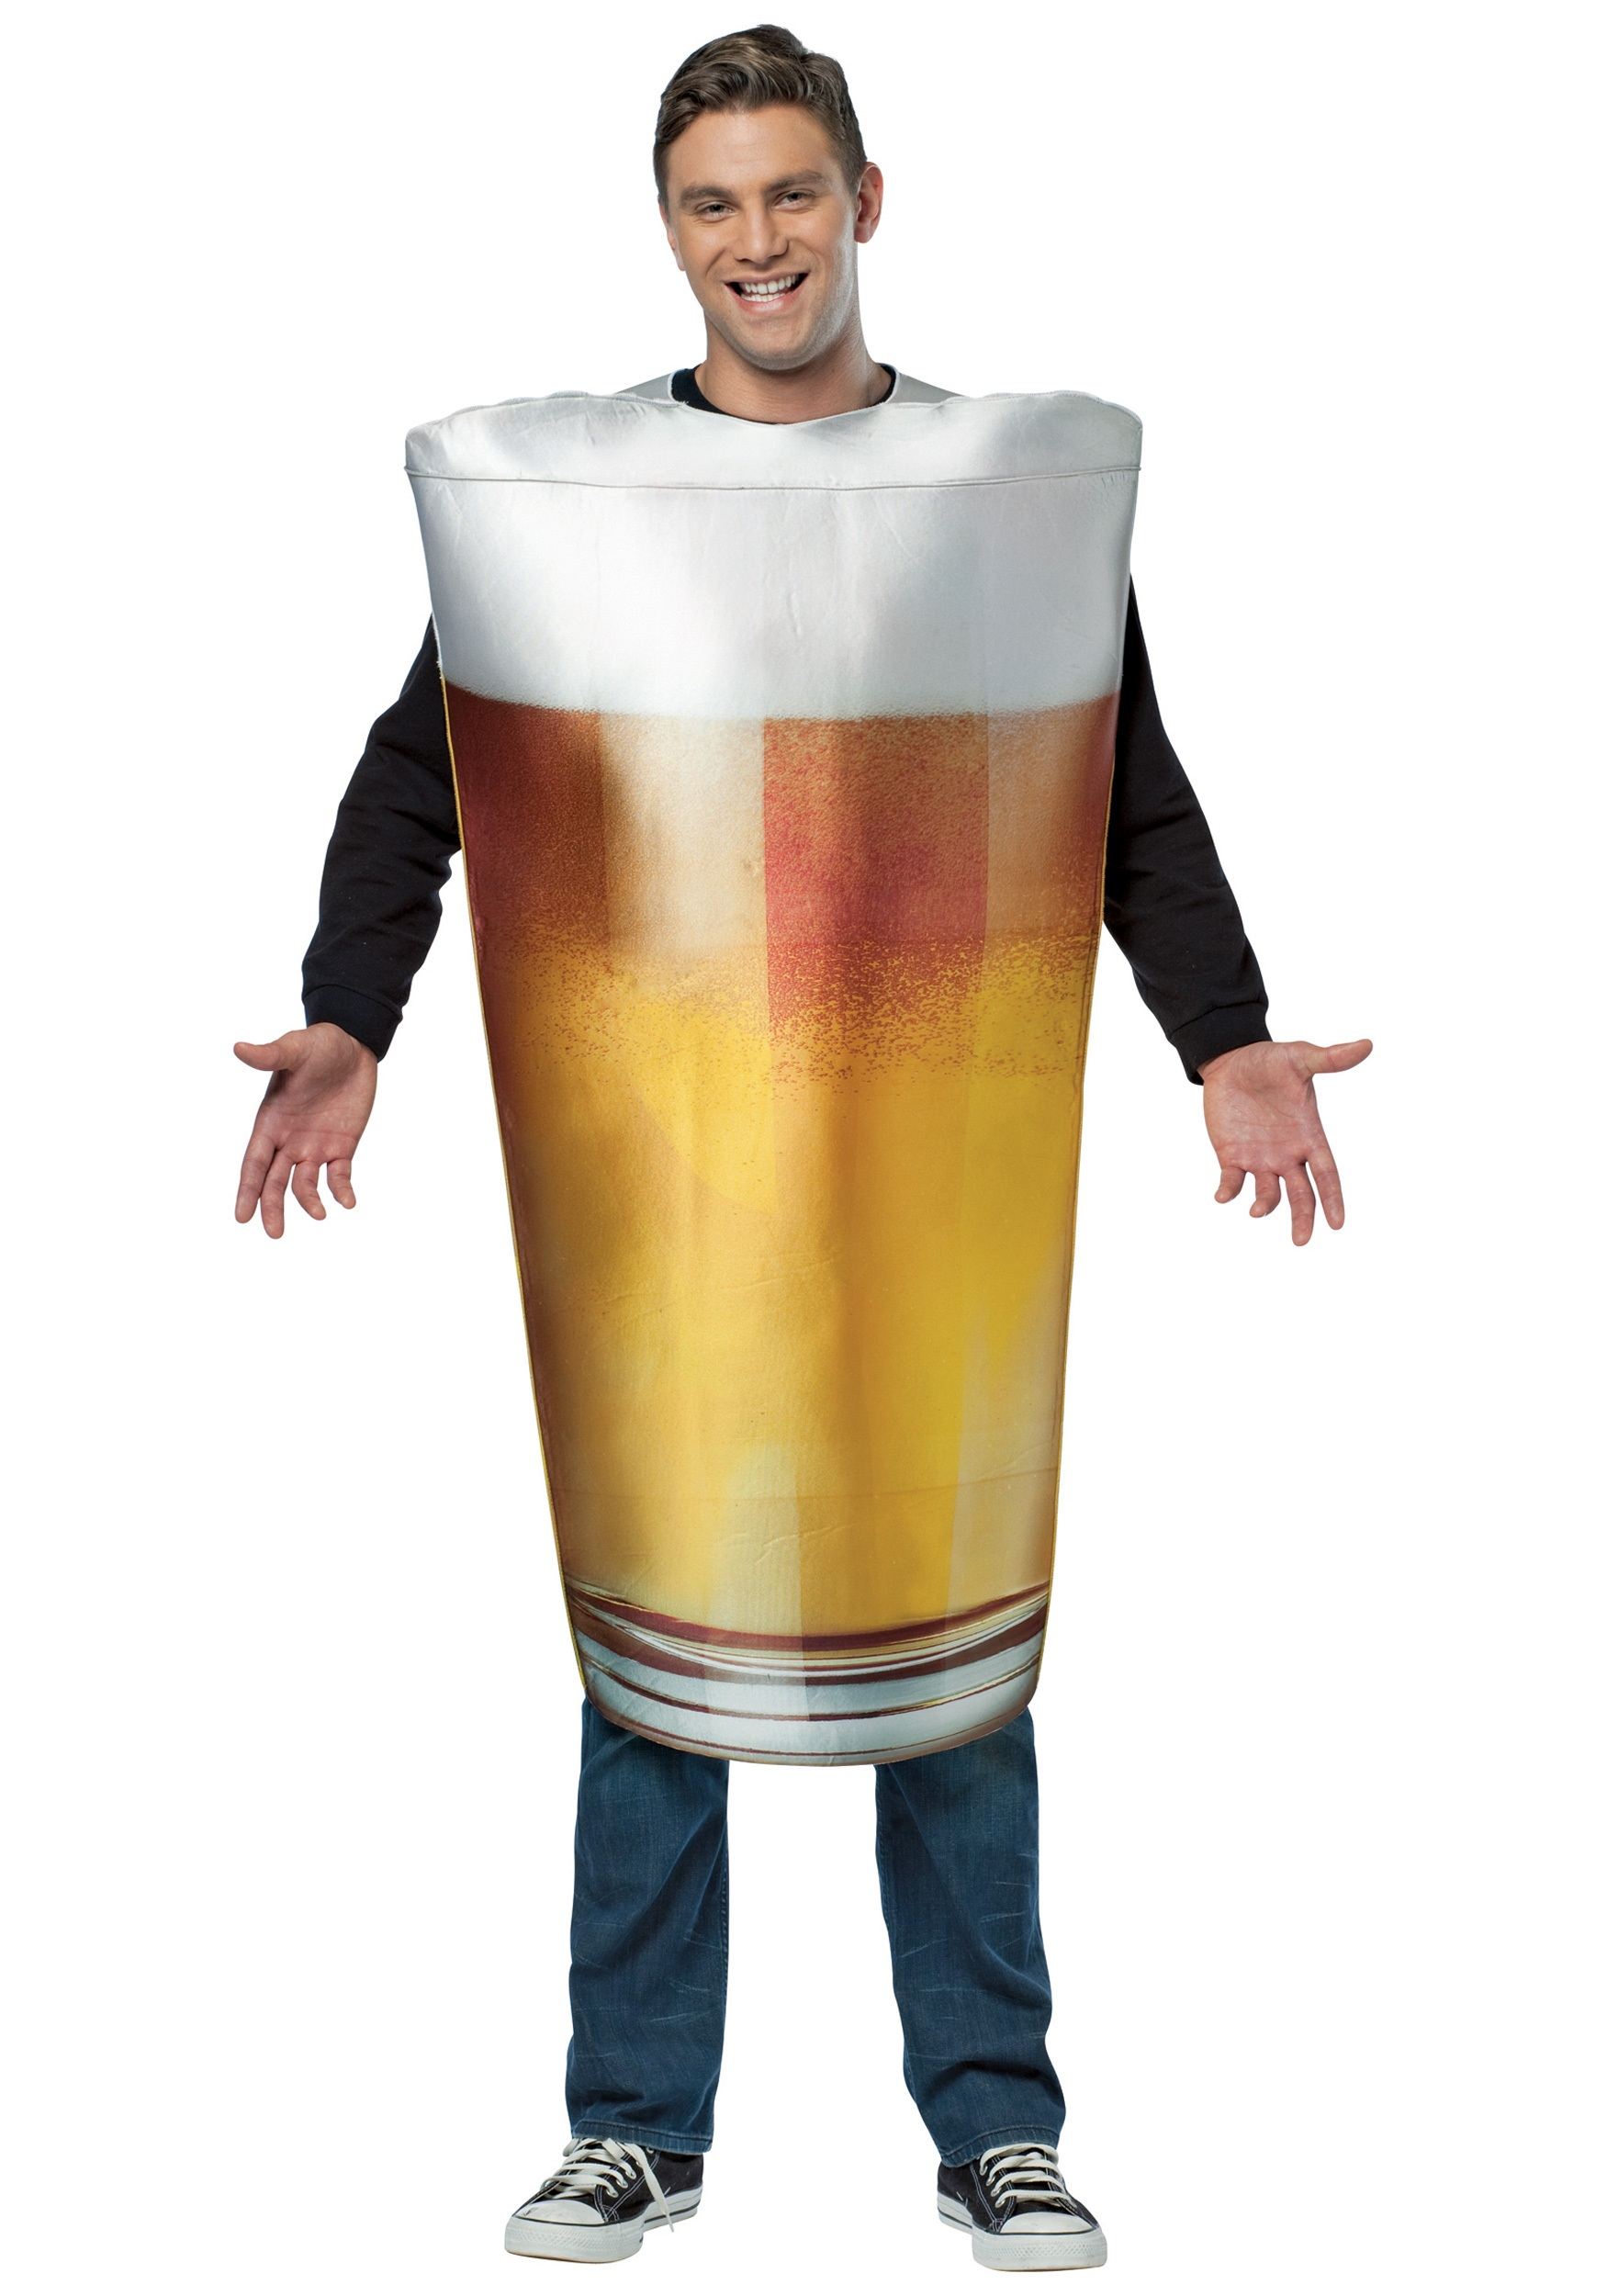 Get Real Pint Of Beer Costume